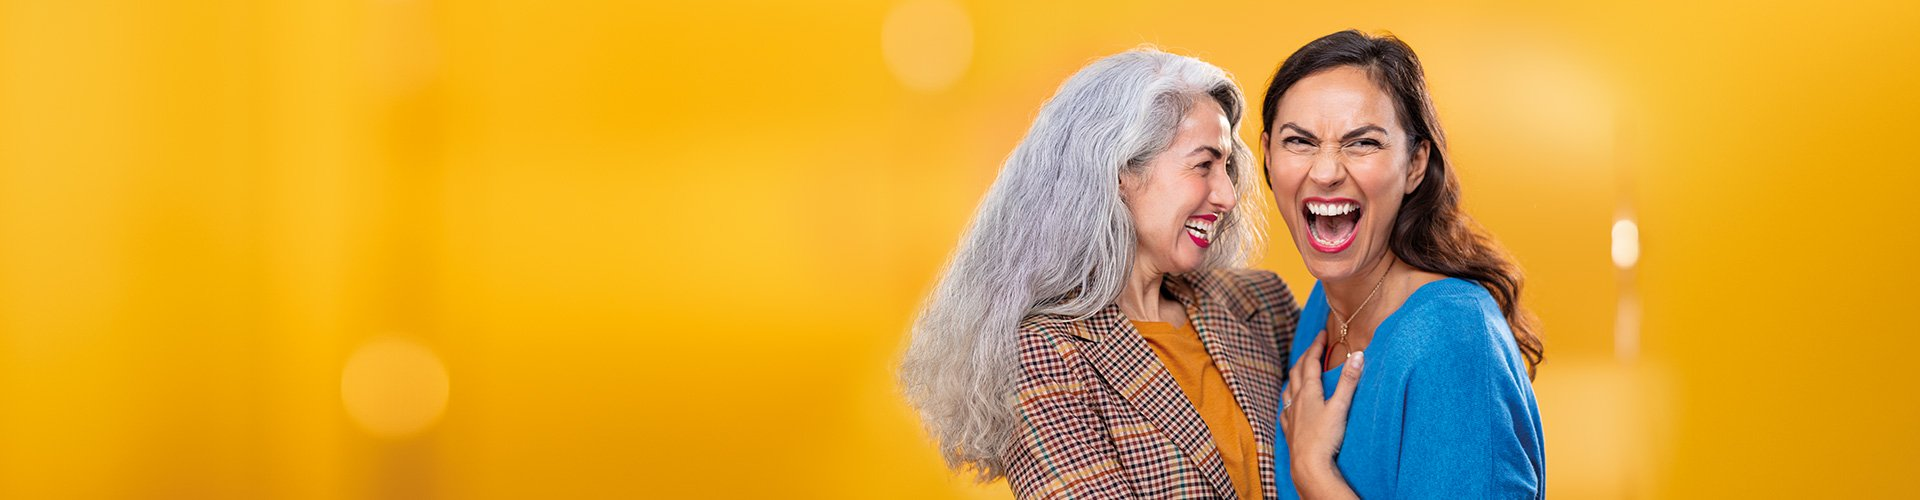 Two middle-aged women hugging each other. One is wearing Philips HearLink in-the-ear hearing aids.